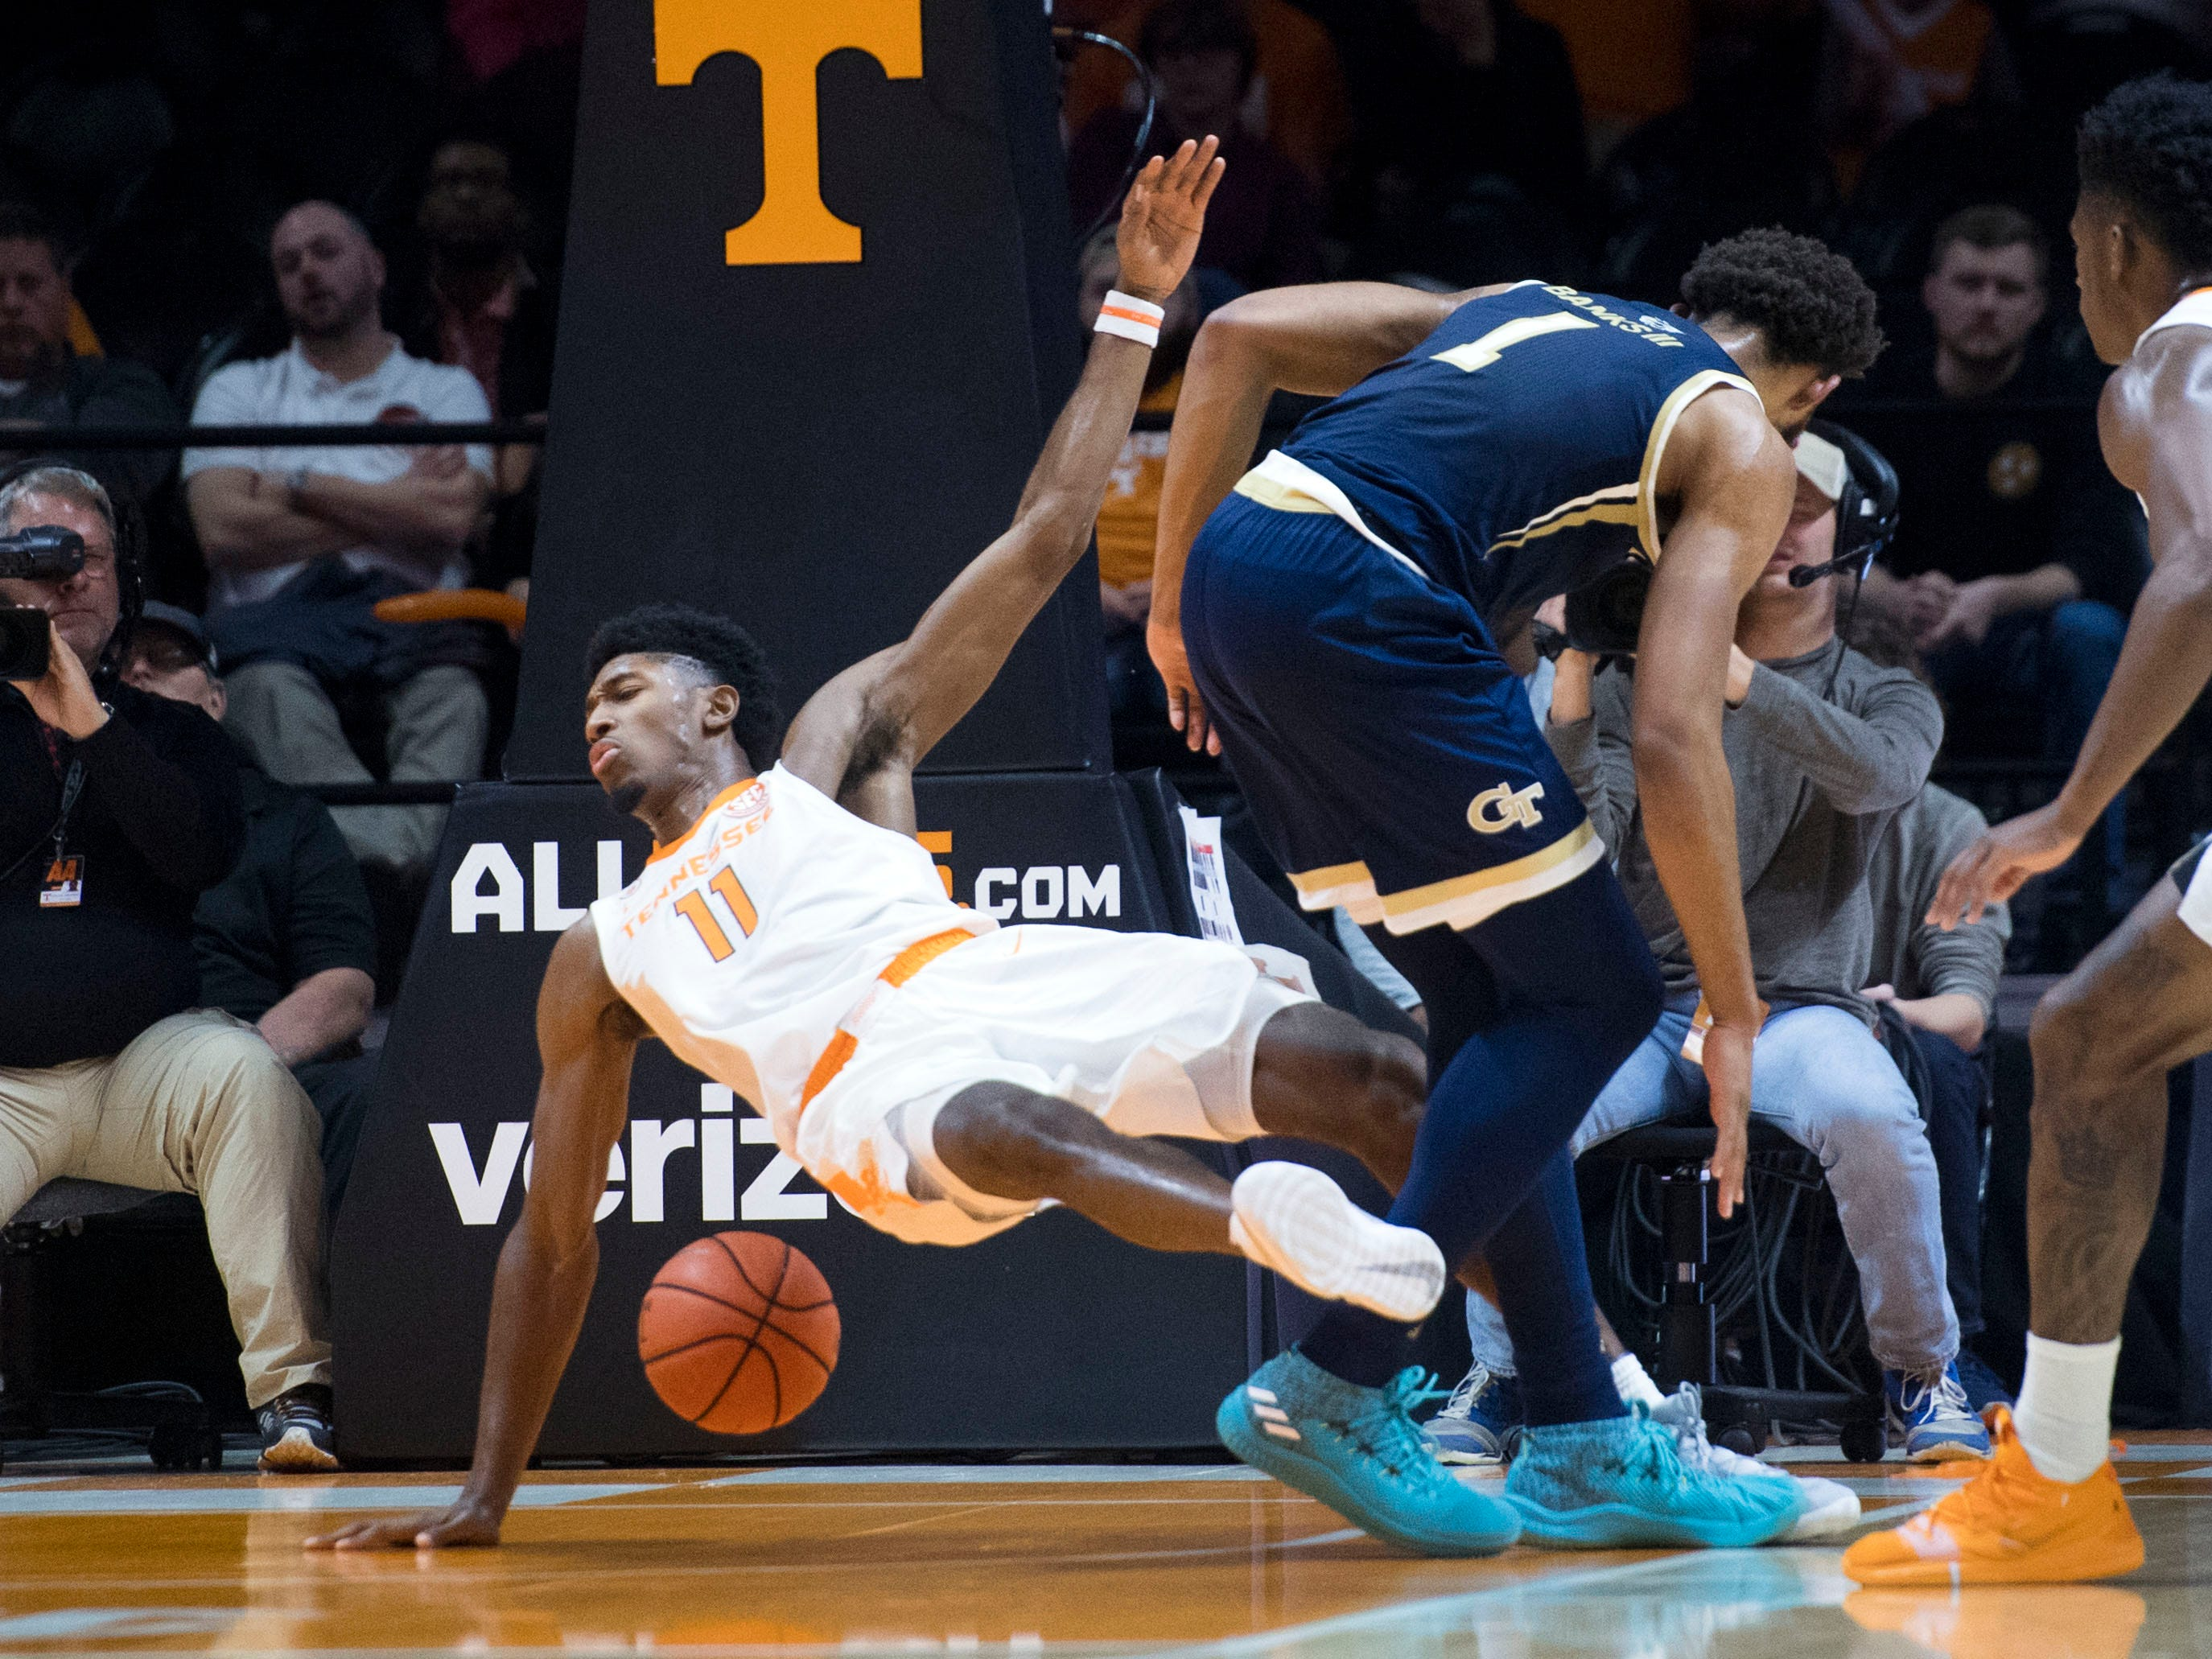 Tennessee's Kyle Alexander (11) draws a foul against Georgia Tech's James Banks III (1) on Wednesday, November 14, 2018.